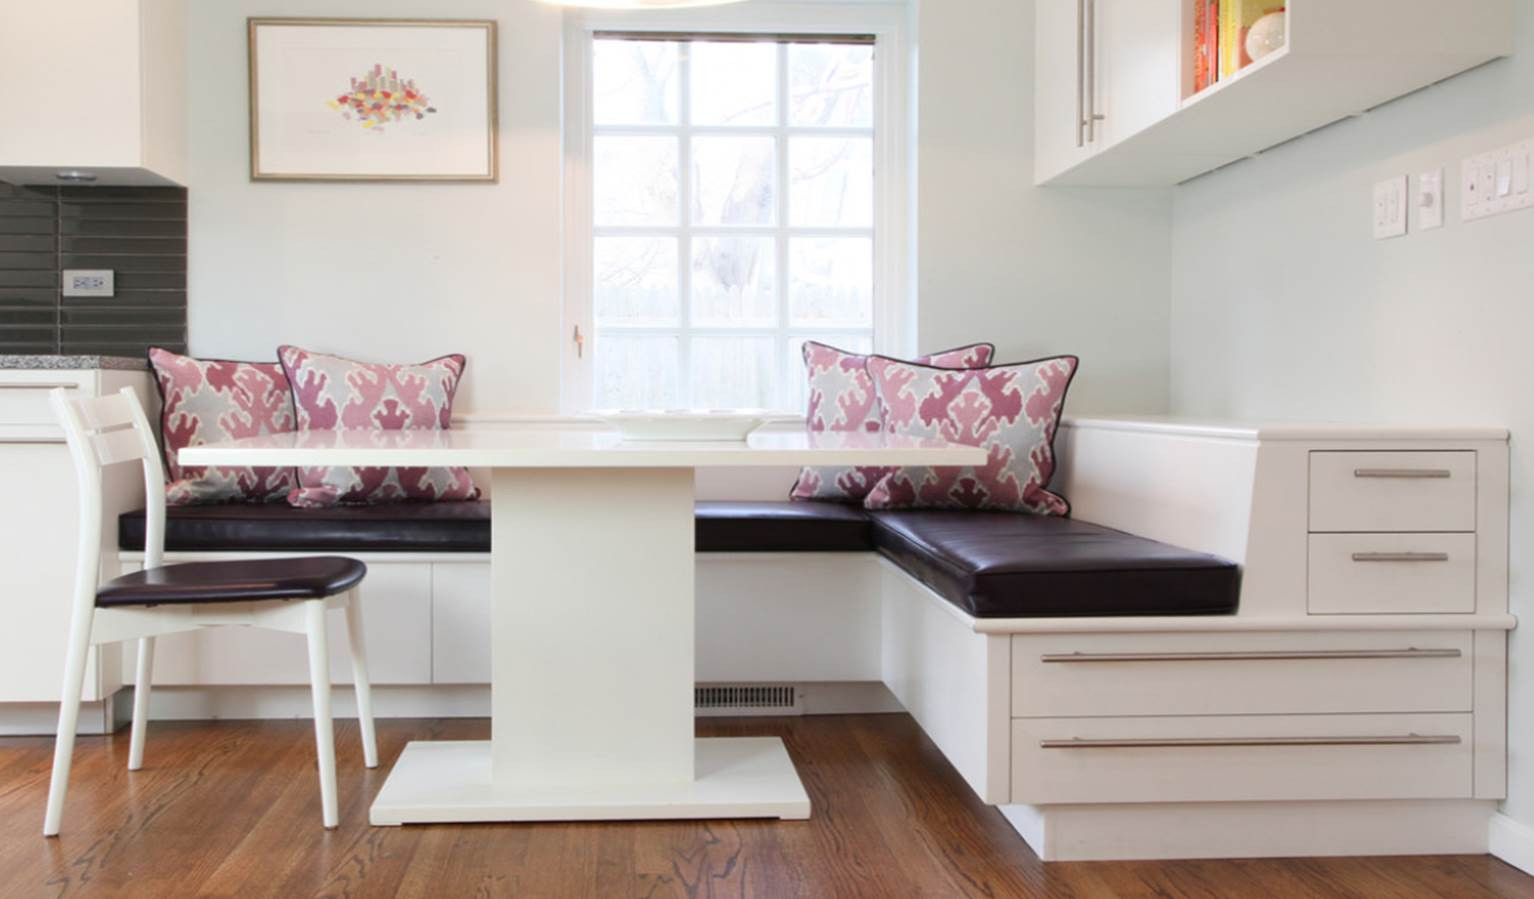 Kitchen Banquette with Storage Beautiful Kitchens and Baths